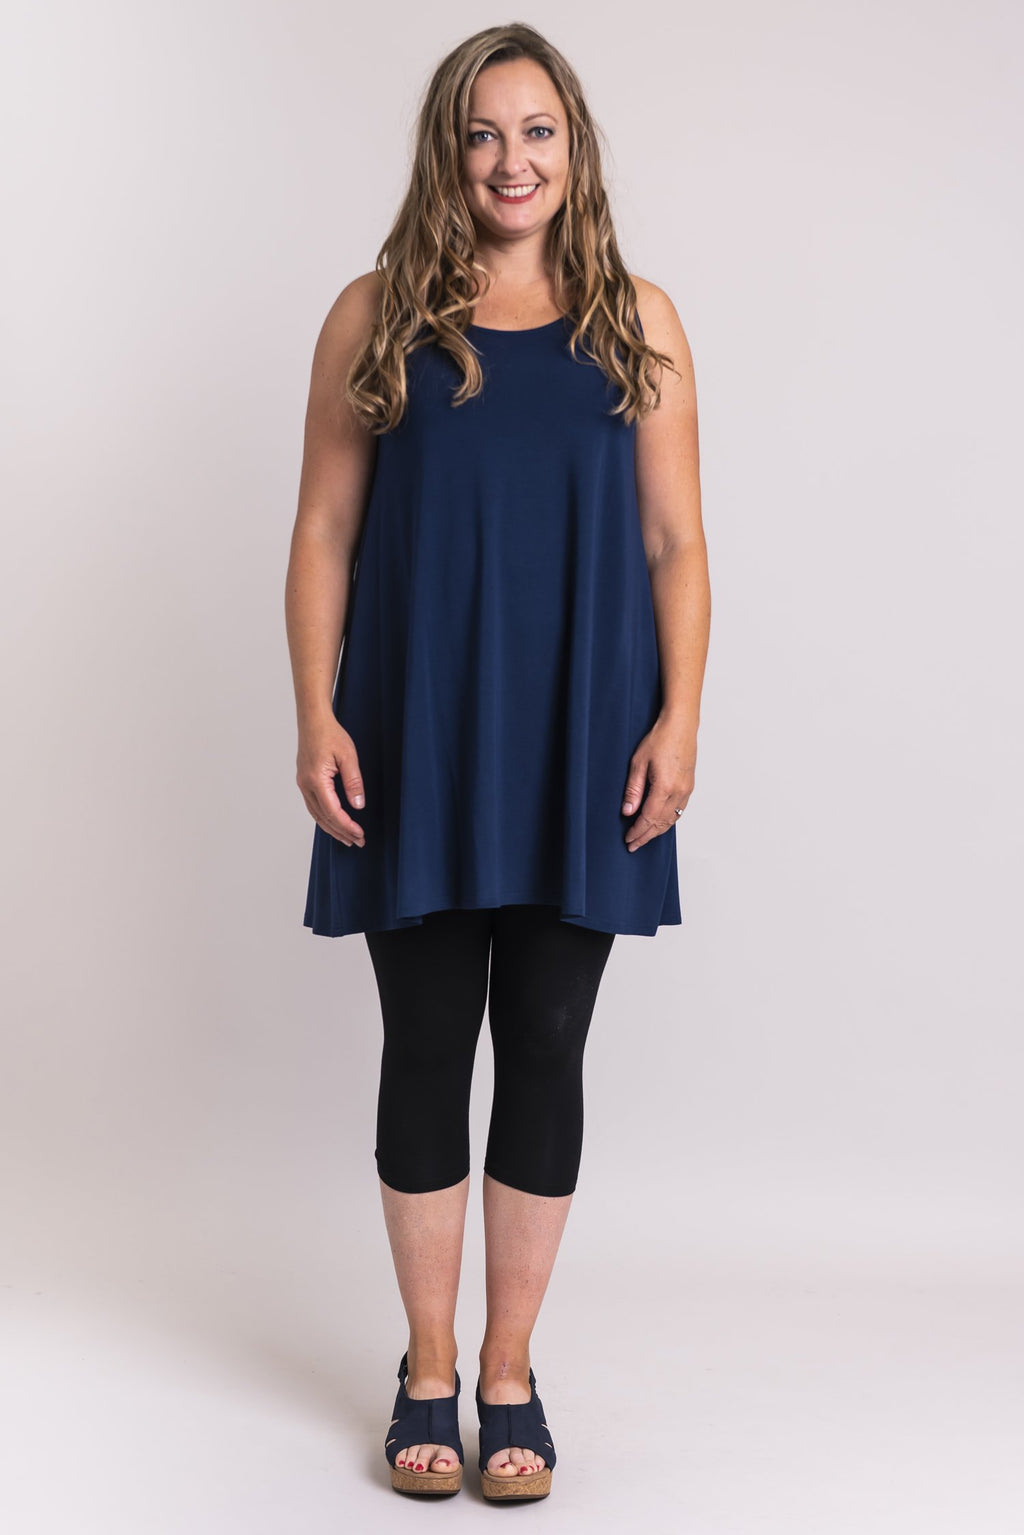 Spirit Dress, Indigo, Bamboo Modal